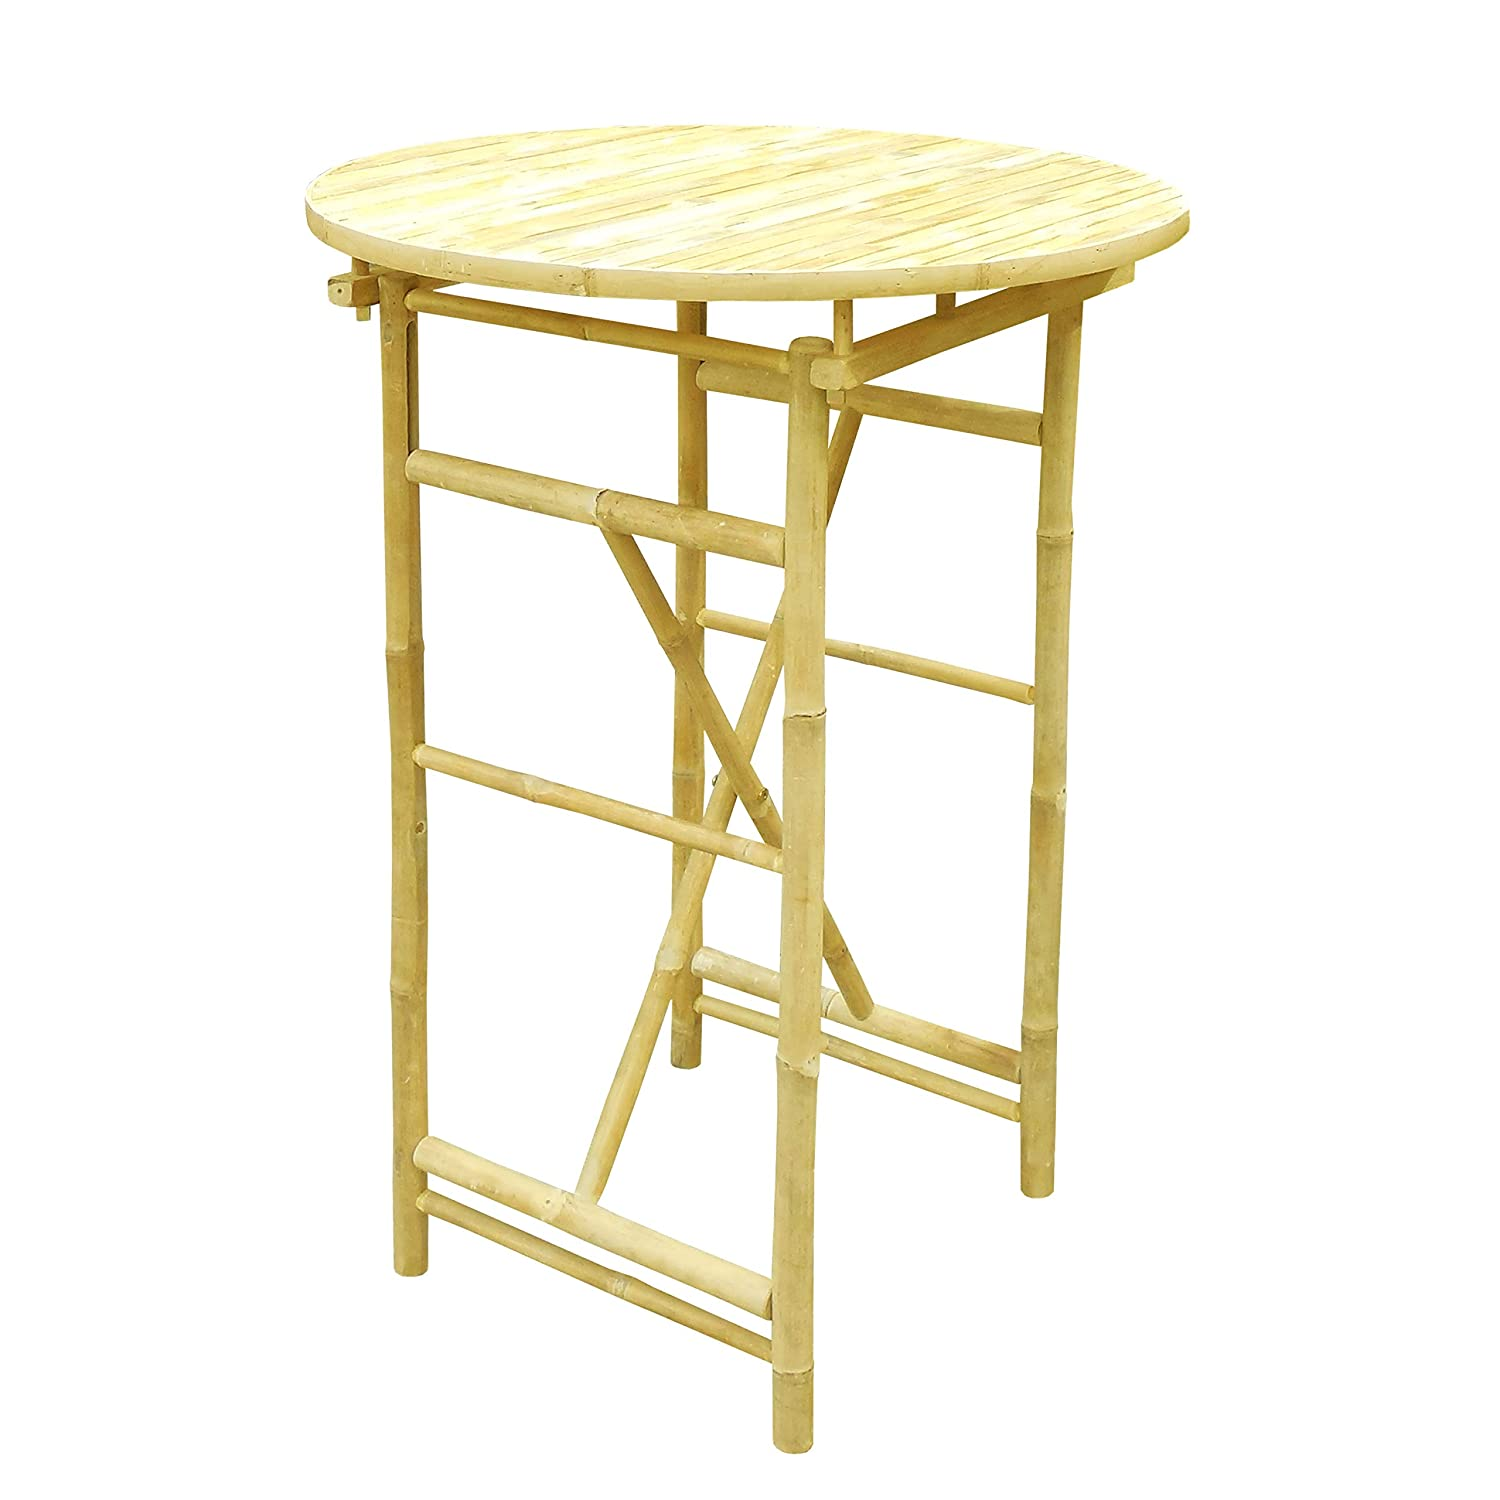 Natural Color 41 H x 30 W x 30 D Statra TA-265-00 Bar Height Folding Bamboo Round Table